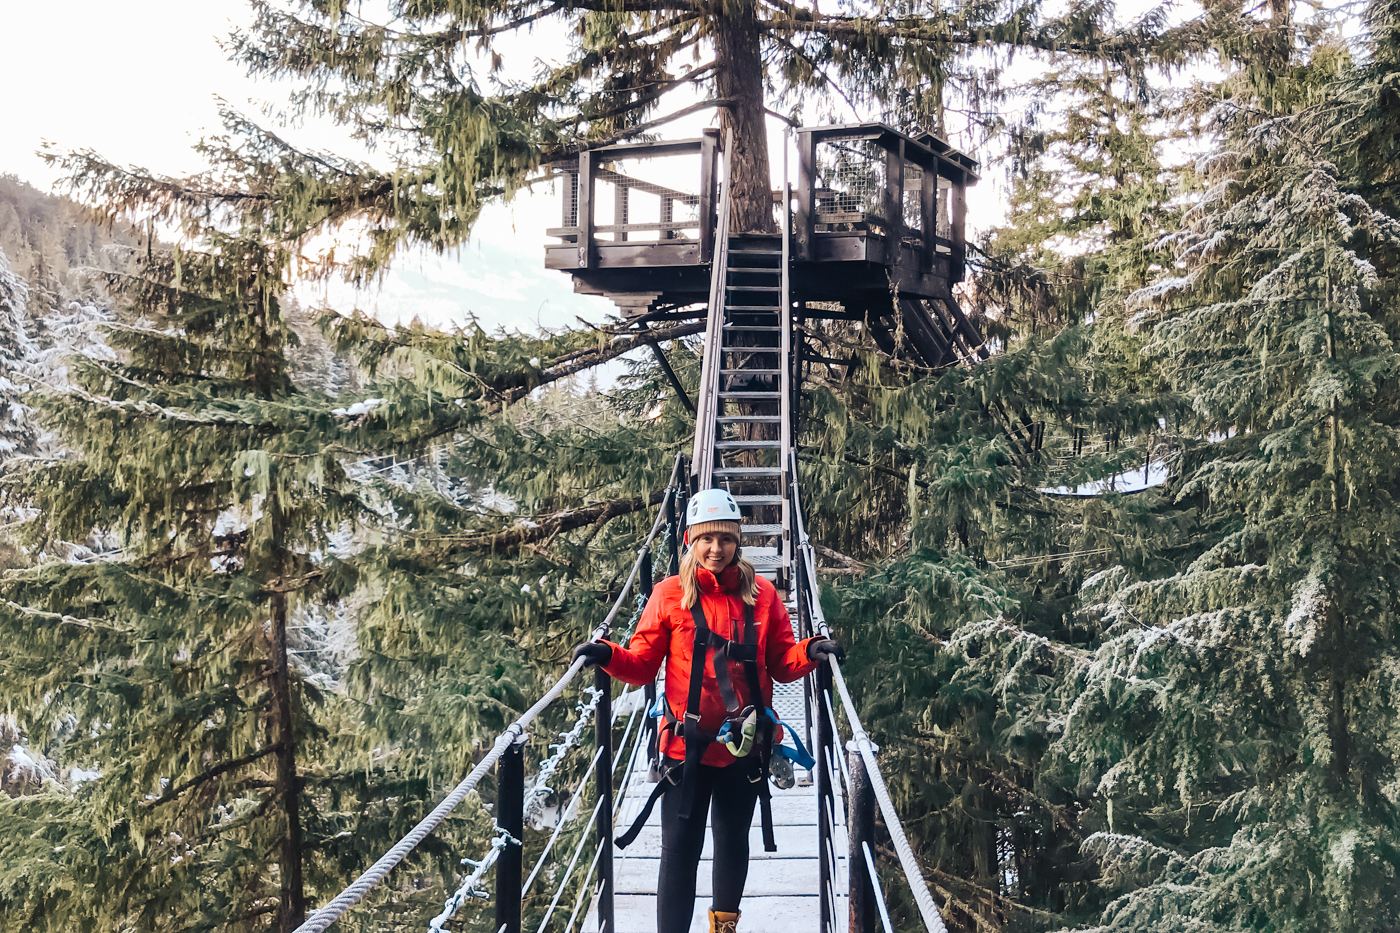 Ziplining with Ziptrek in Whistler, BC